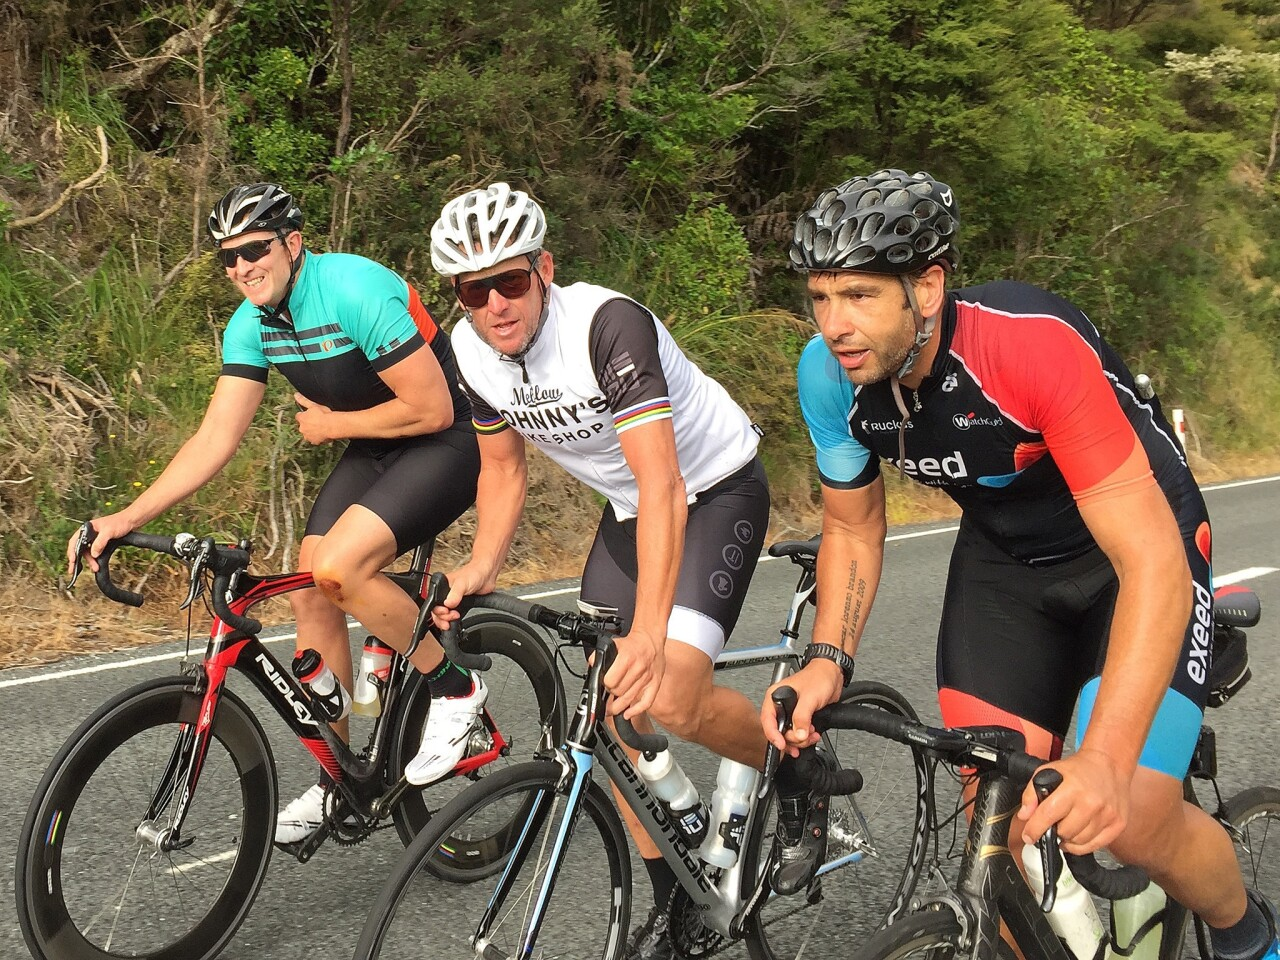 AUCKLAND, NEW ZEALAND - DECEMBER 19: Lance Armstrong (C) rides along Scenic Drive with local cyclists during a ride in Auckland's Waitakere Ranges on December 19, 2016 in Auckland, New Zealand. (Photo by Phil Walter/Getty Images) ** OUTS - ELSENT, FPG, CM - OUTS * NM, PH, VA if sourced by CT, LA or MoD **